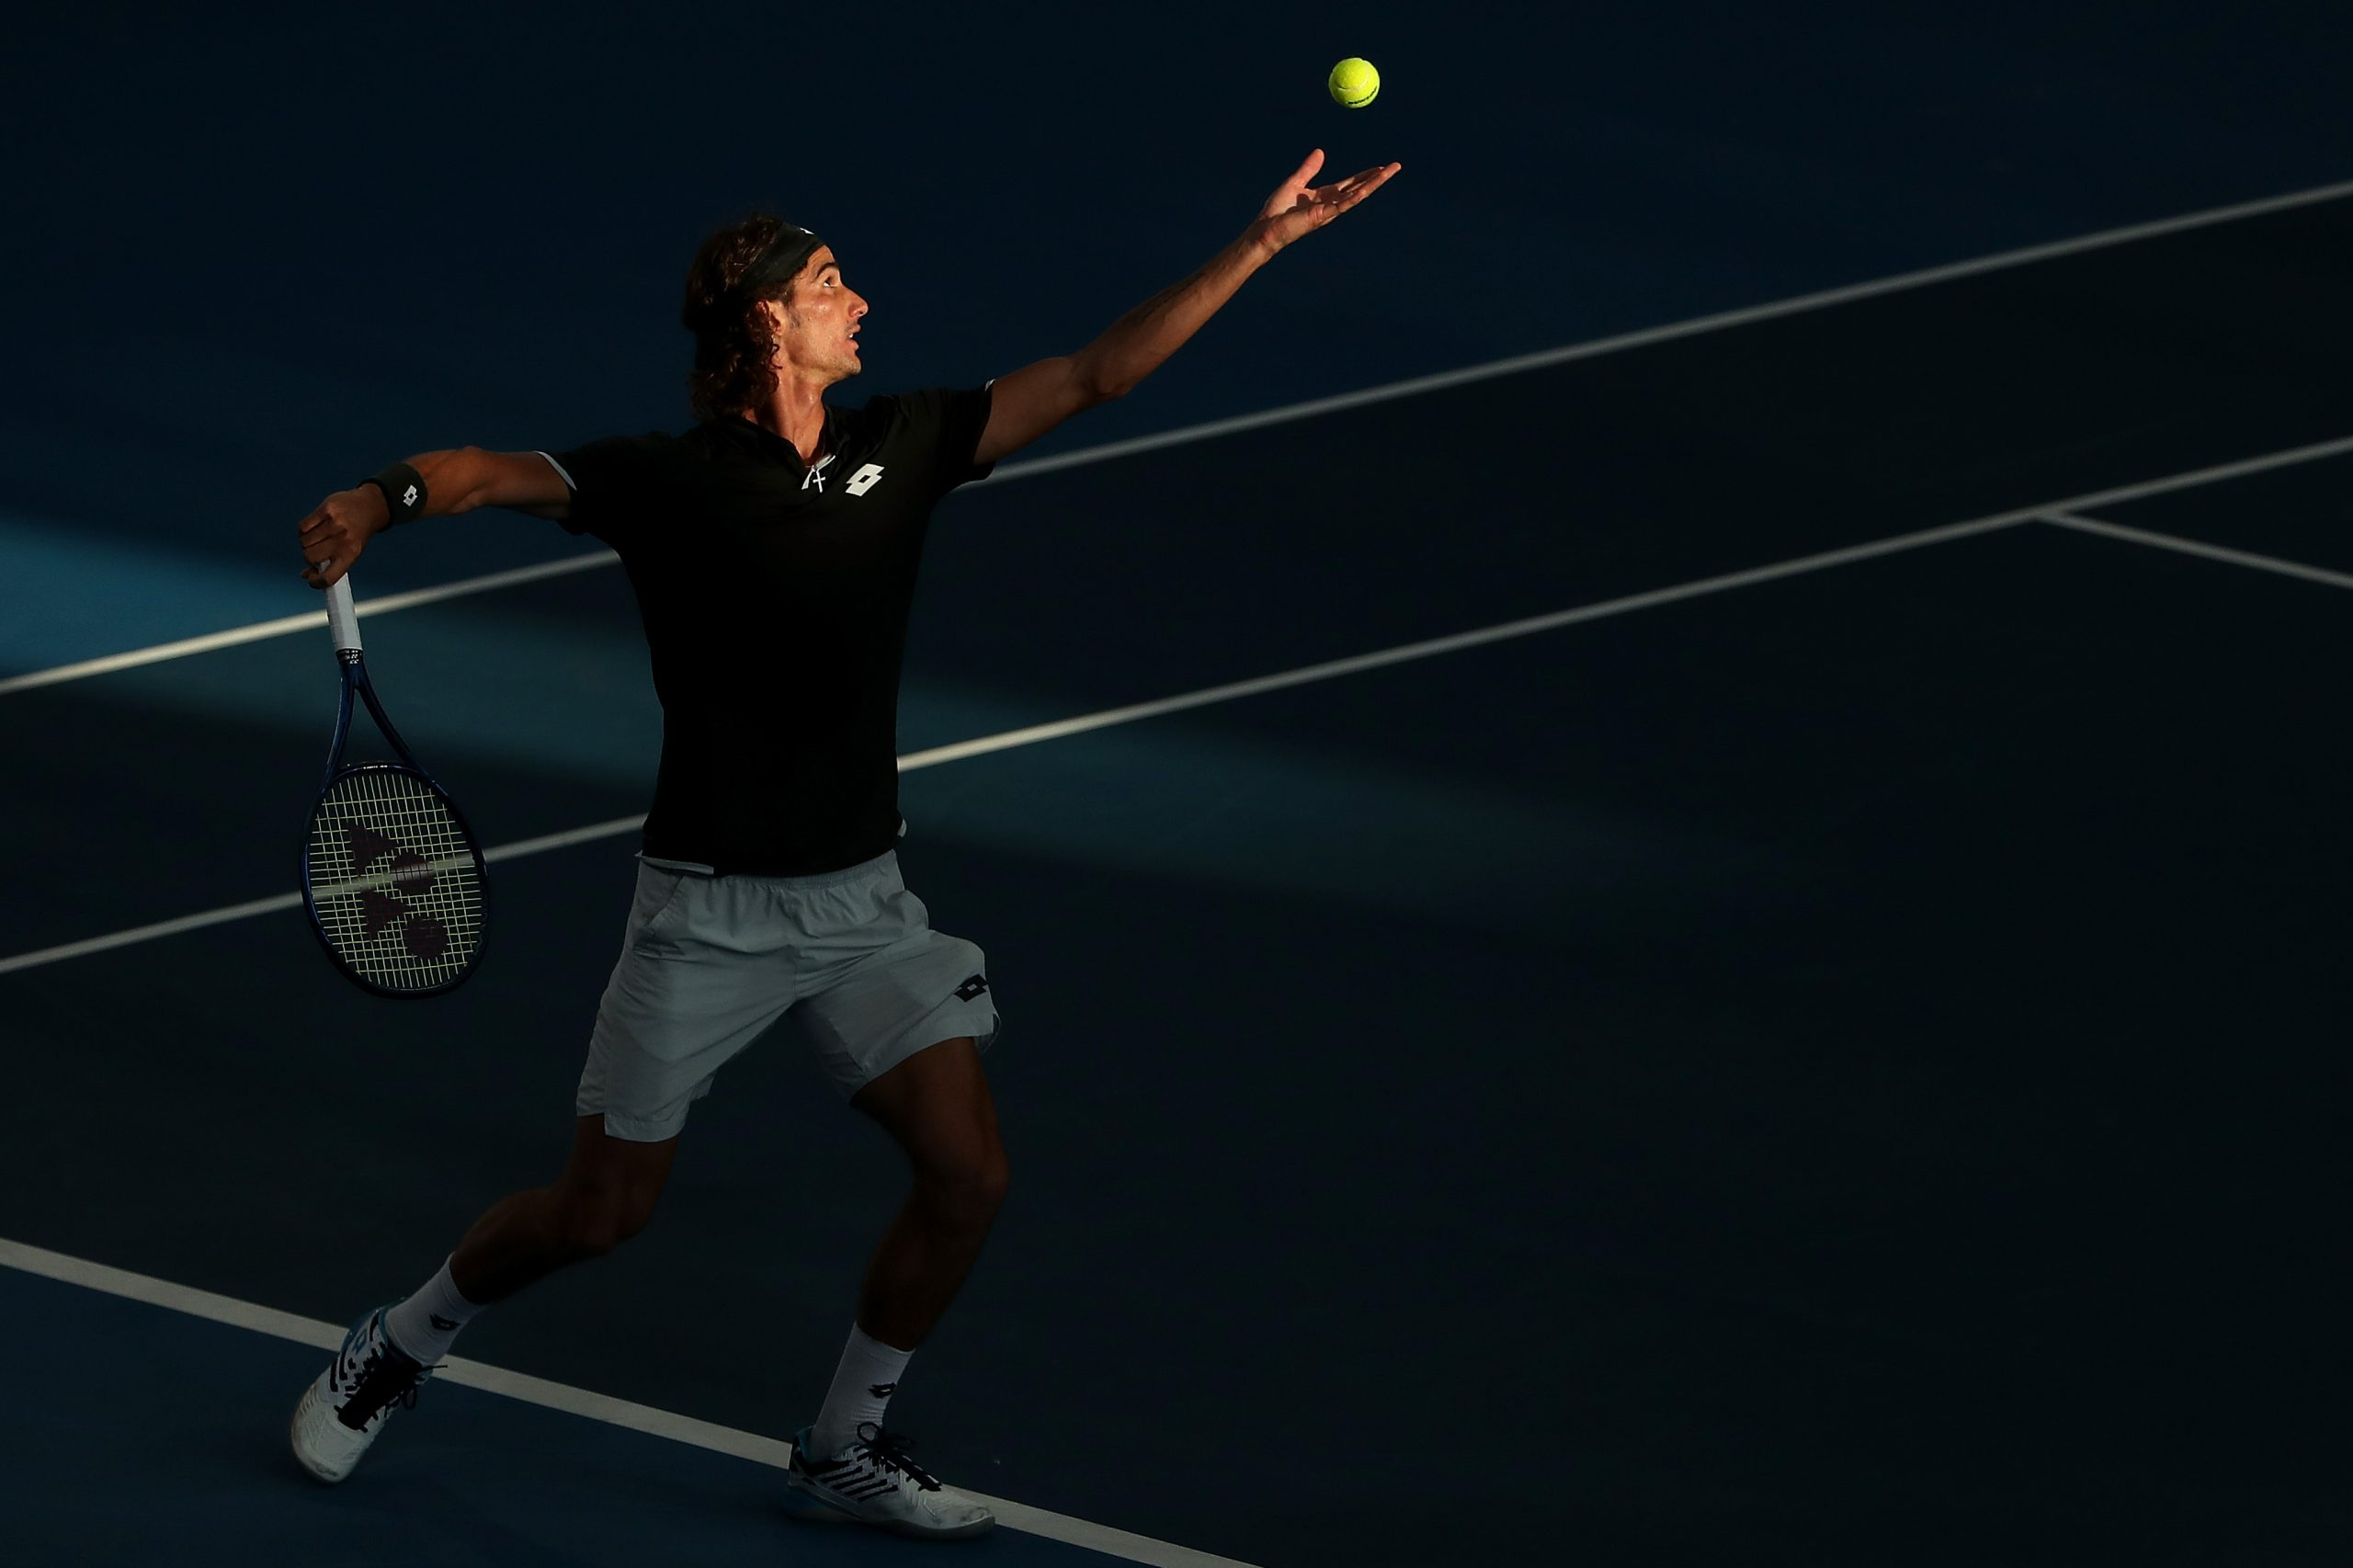 18 January 2020: Lloyd Harris serves to Russia's Andrey Rublev during the final of the Adelaide International in Adelaide, Australia. (Photograph by Paul Kane/Getty Images)